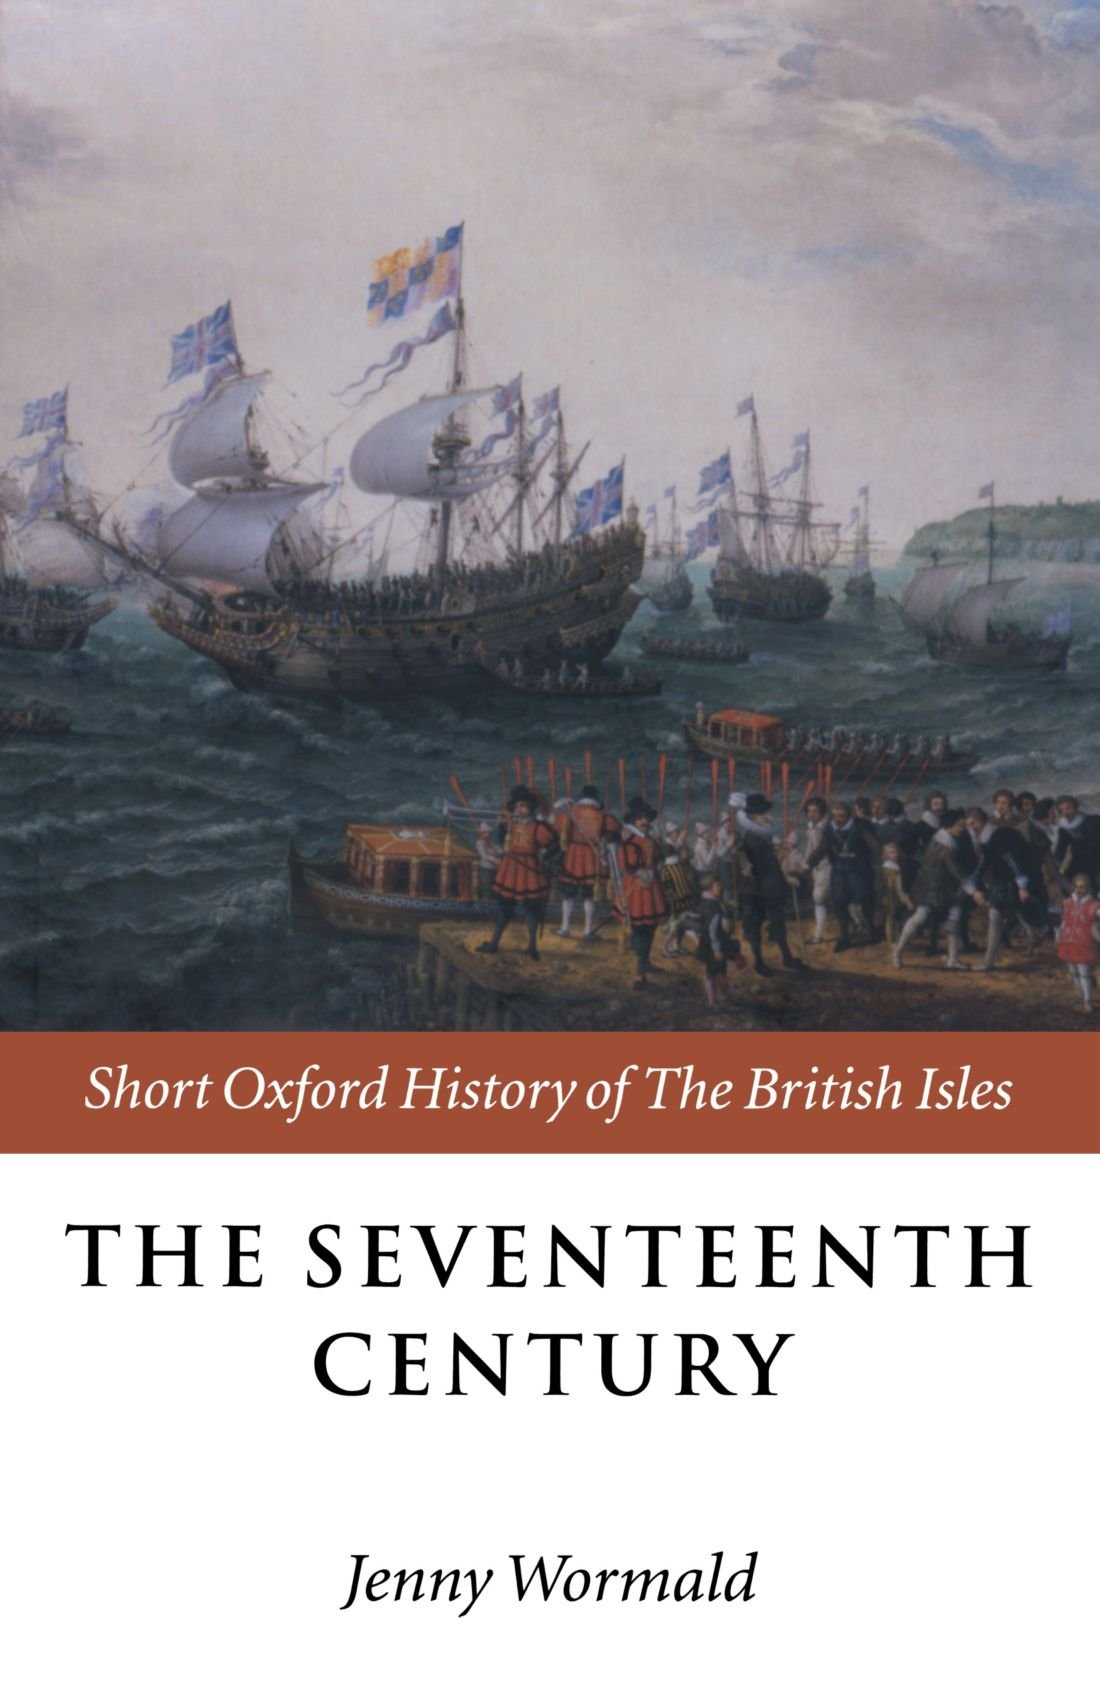 The Seventeenth Century: 1603-1688 (Short Oxford History of the British Isles)